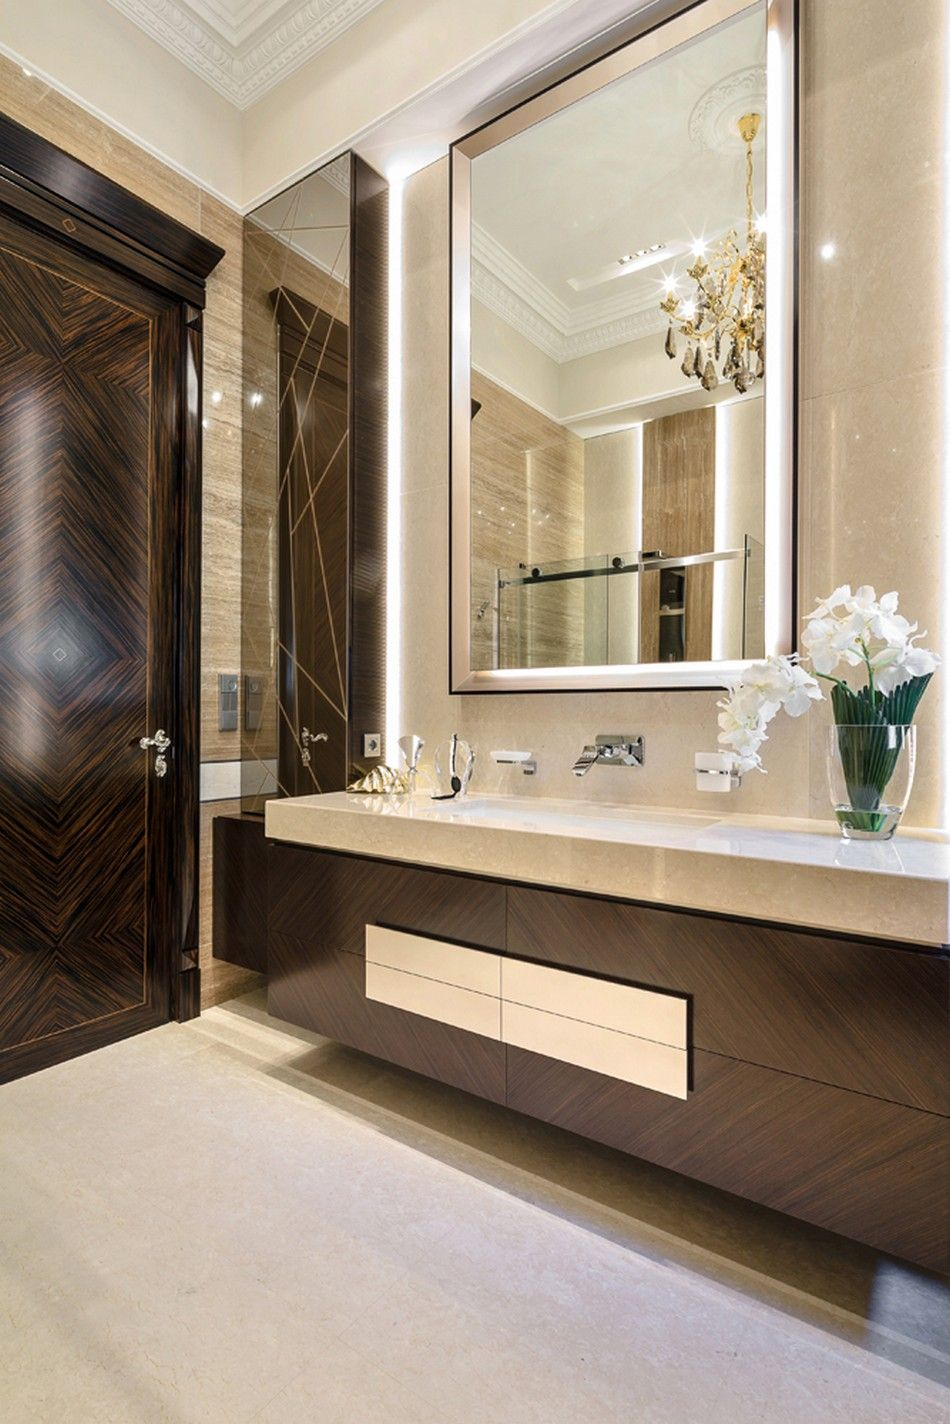 Modern classic style in the interior